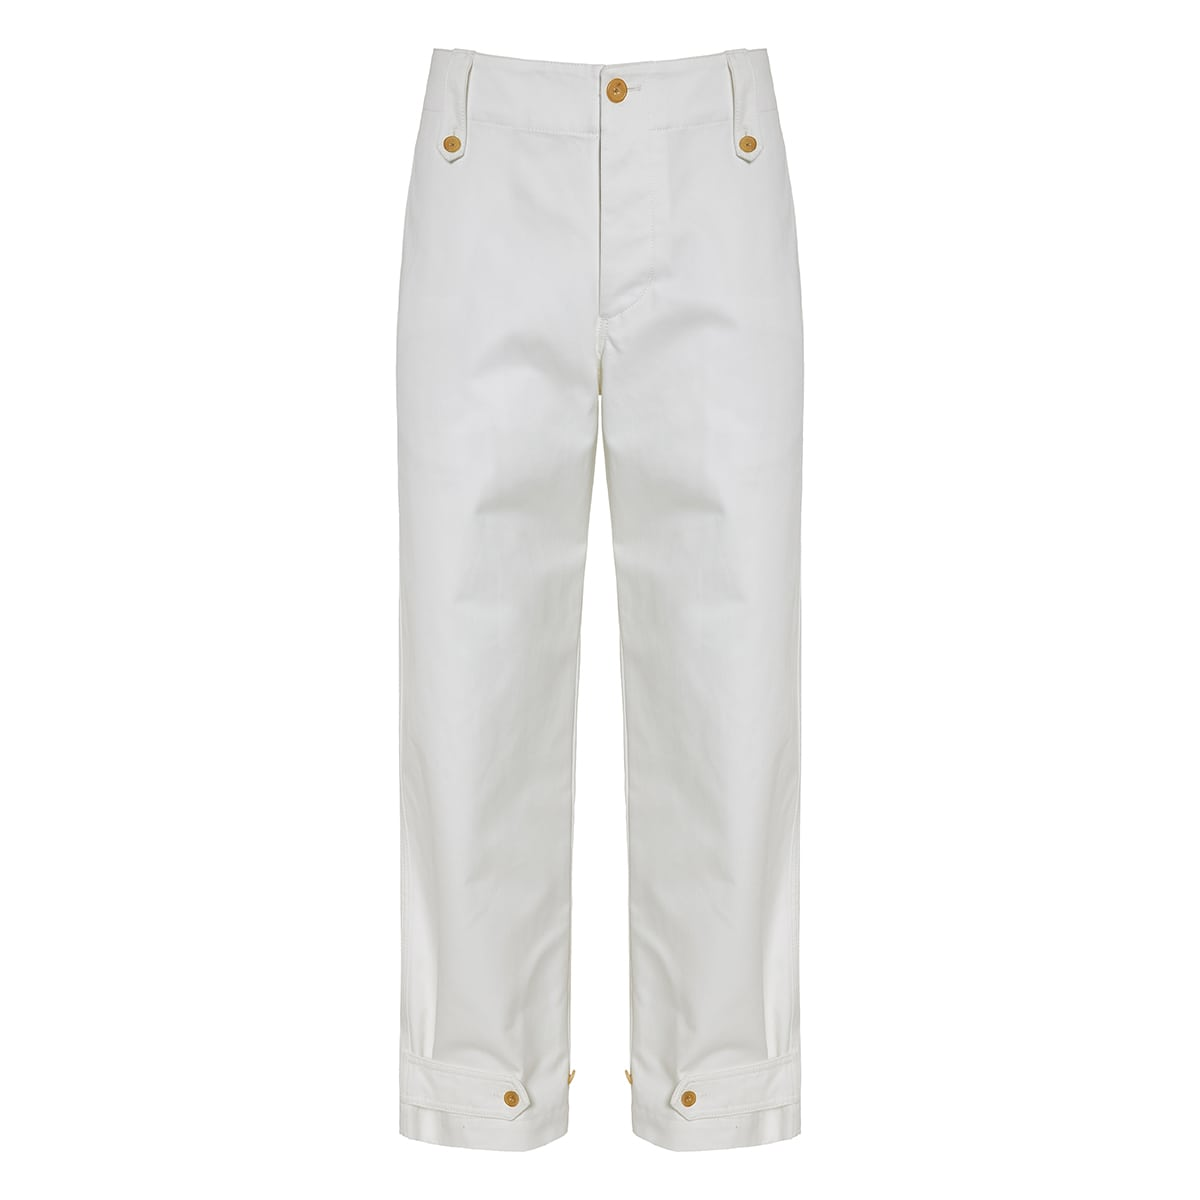 Straight-leg cotton trousersStraight-leg cotton trousers